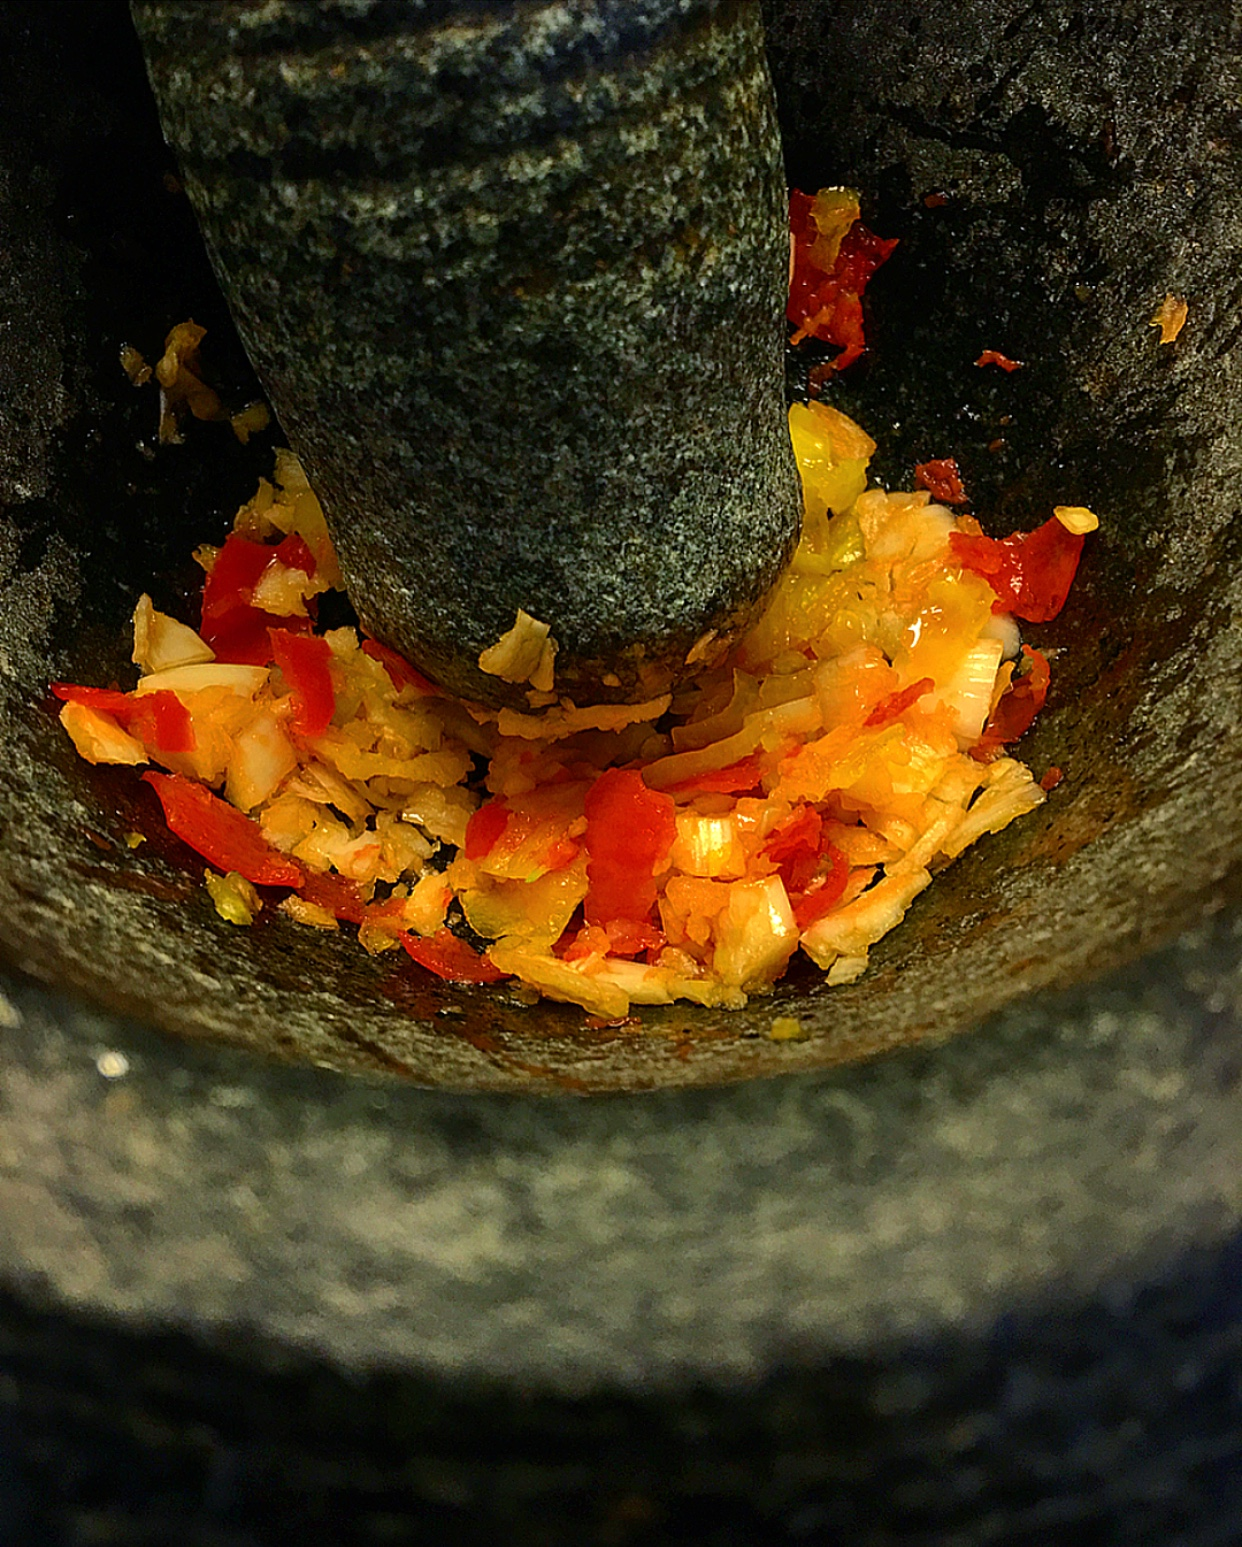 Mash the garlic and peppers in a mortar and pestle.